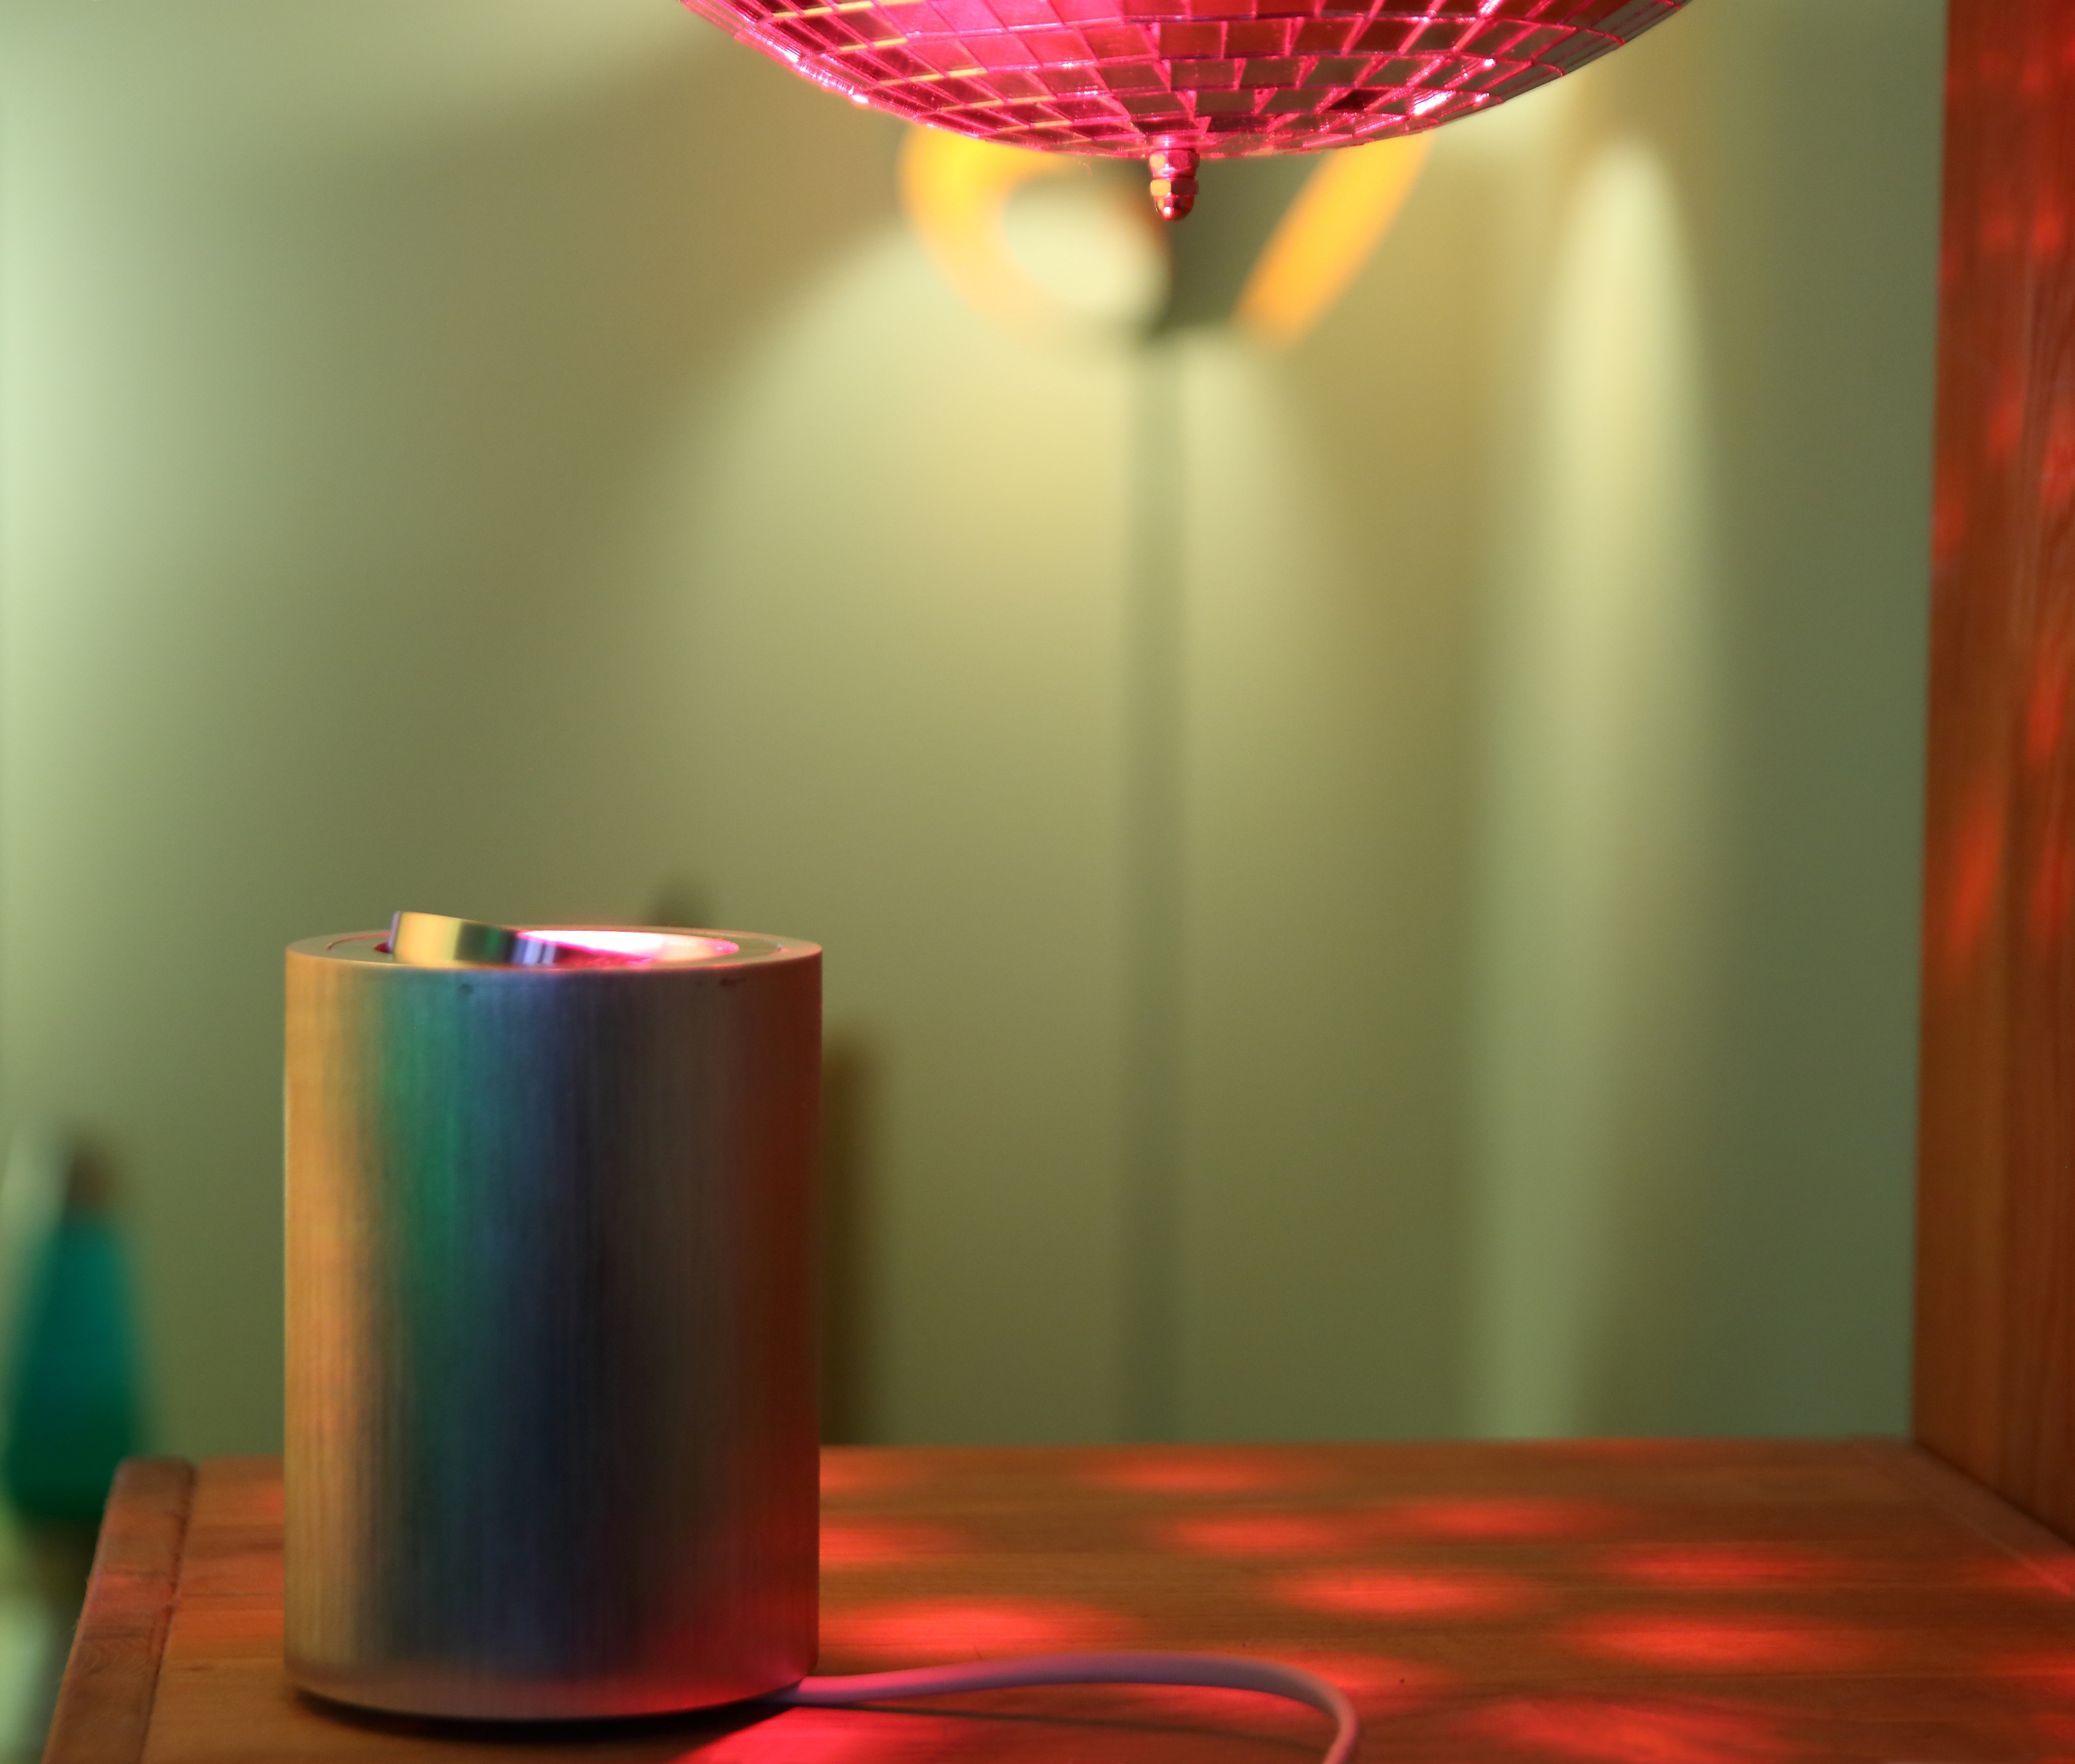 Fixtures for Hue lights | iConnectHue